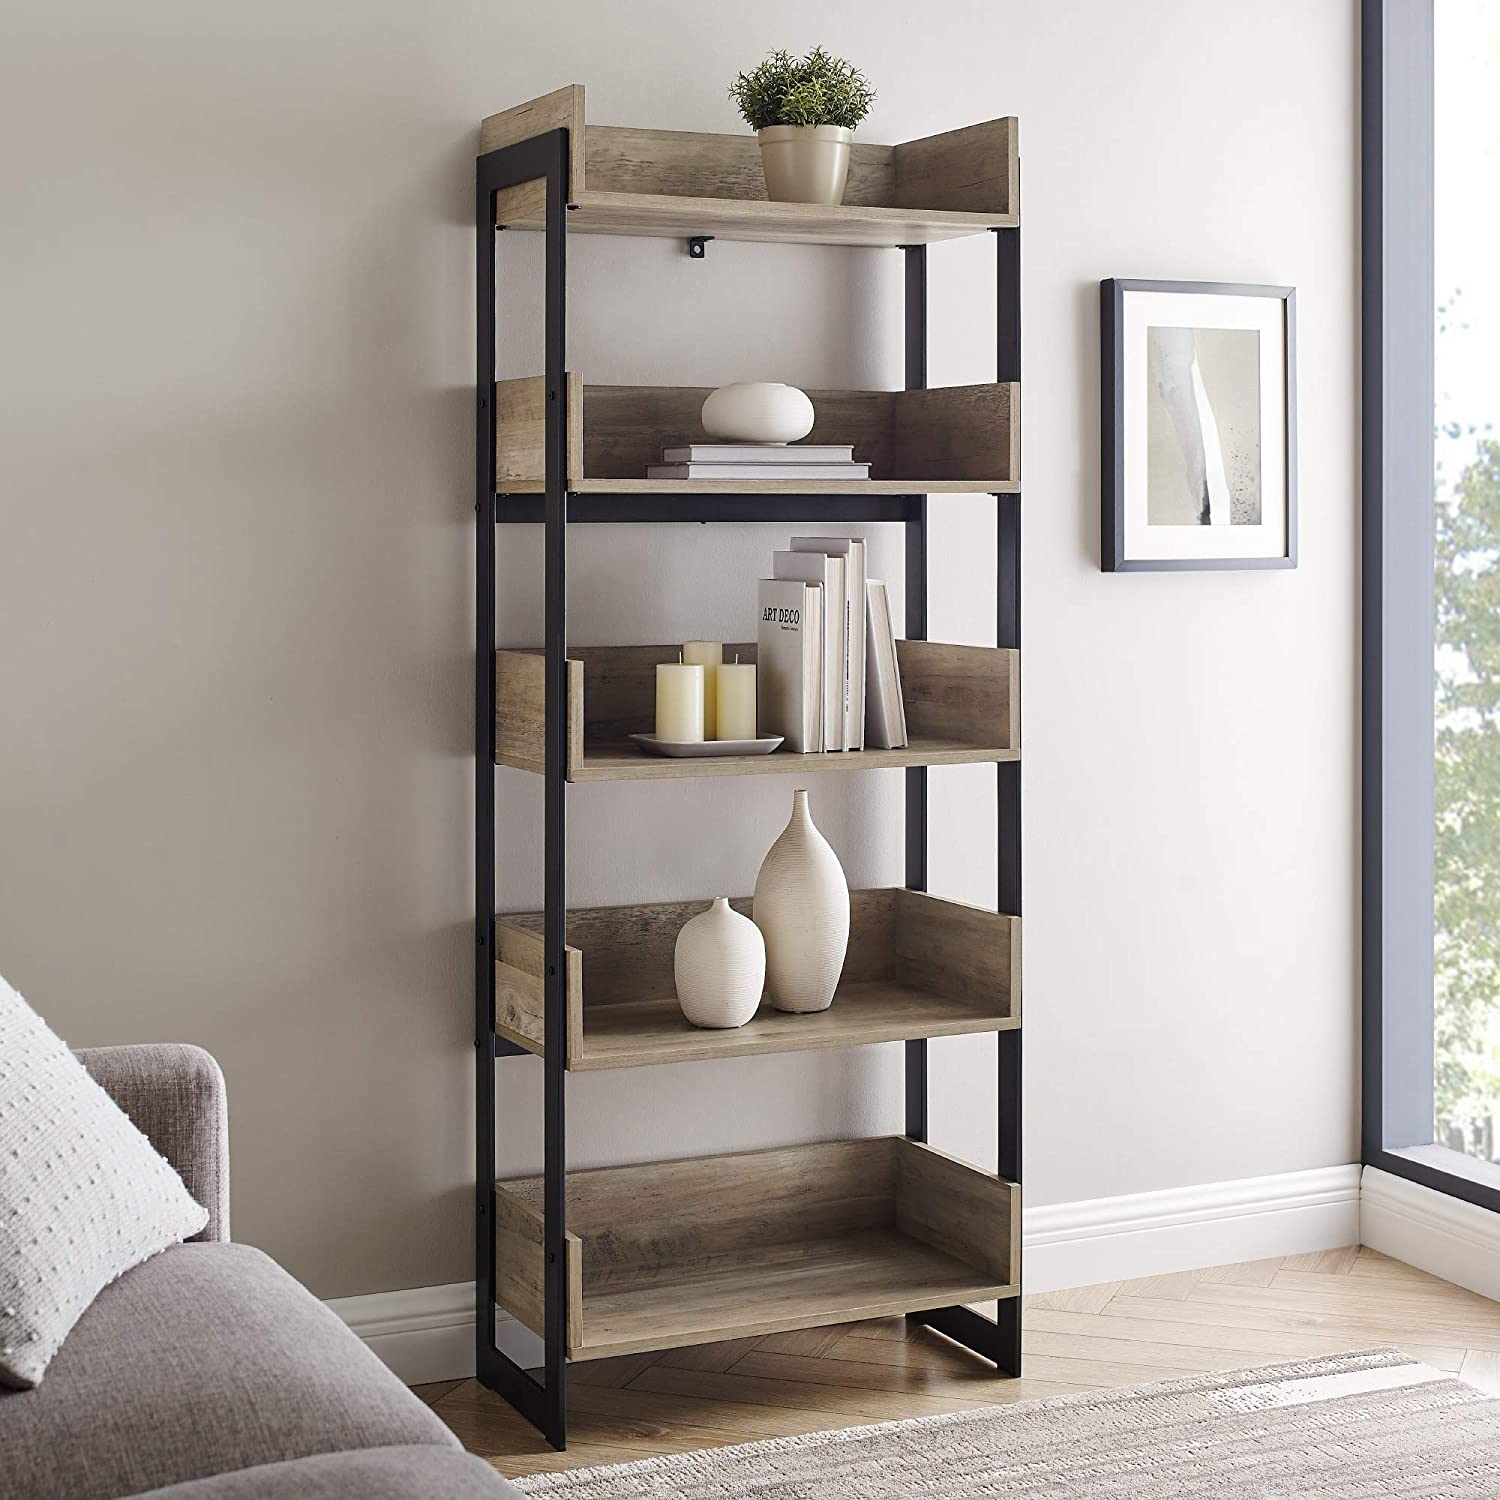 Walker Edison Addison Urban Industrial Metal and Wood 5-Shelf Bookcase, 64 Inch, Grey Wash